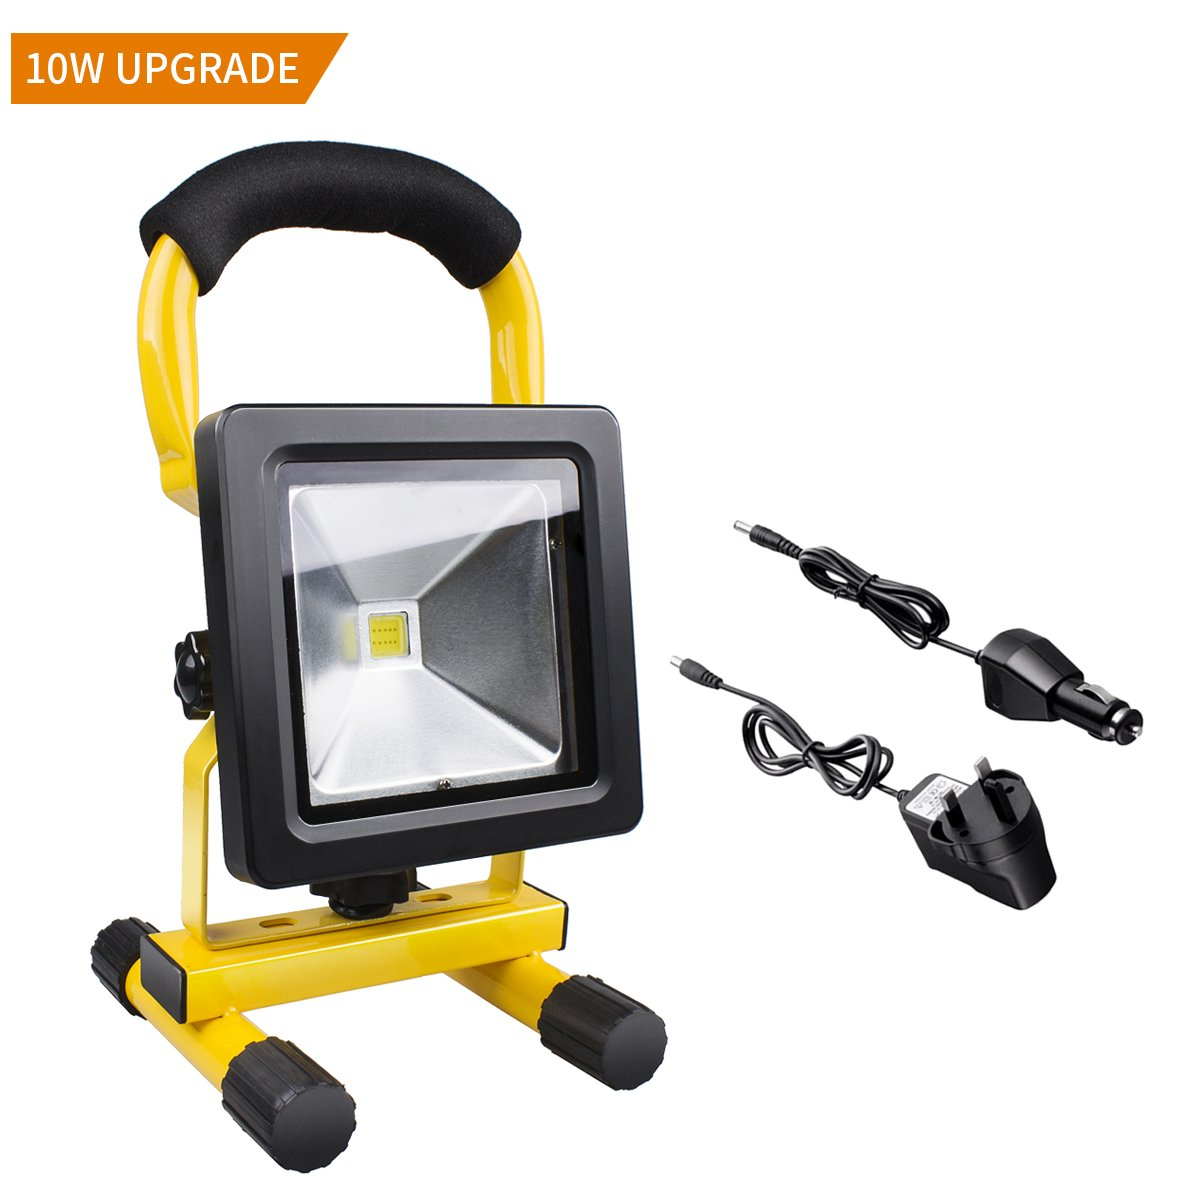 10W Led Work Light Rechargeable, Portable Flood Light - 4400mA IP65 Waterproof Spotlight Light, Morpilot 700lm Outdoor Emergency Hand Work Lamp (Adapter and Car Charger Included) 2361001